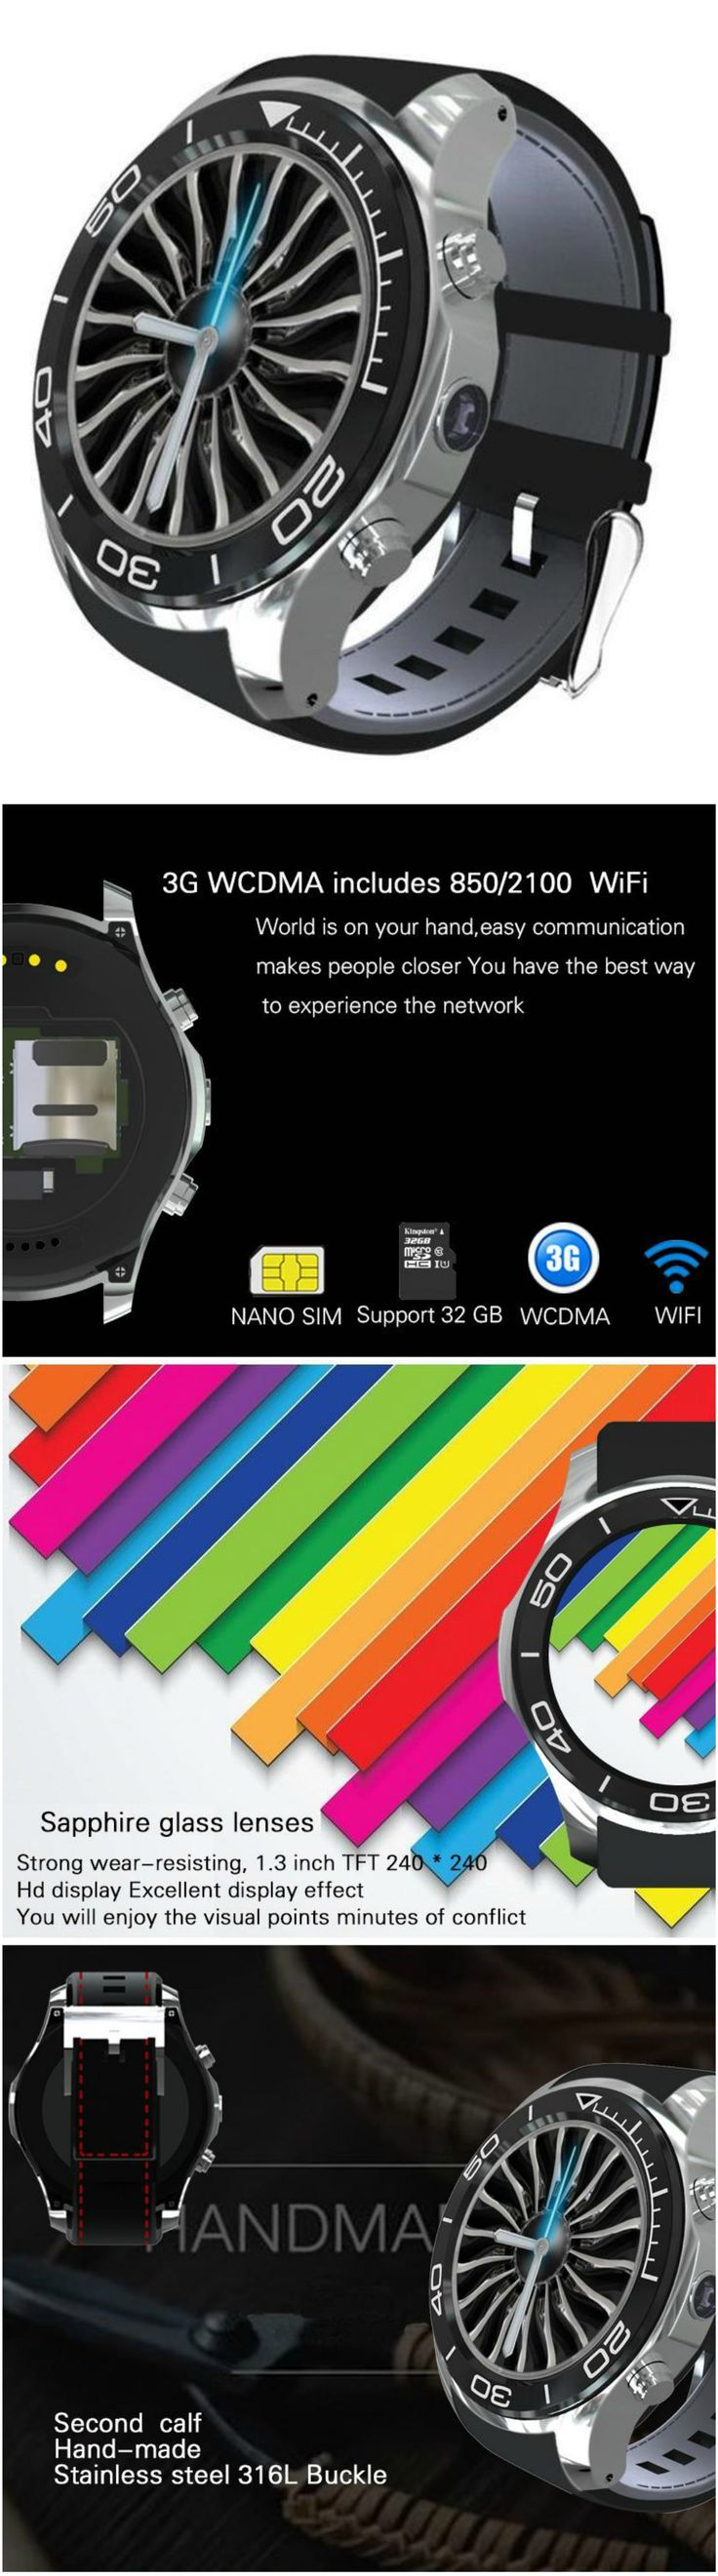 New Fitness Tracker Wristband Heart Rate Monitor Smart Band with Blood Pressure Pedometer - compatible with Android, IOS via Bluetooth. Alarm clock, message and call reminders.  sleep tracker. Touch screen enabled - perfect for workouts, gym, daily exercise, jogging and running, health and travel enthusiasts. Great accessory for Apple iPhone 6 & 7 series, Samsung Galaxy series, LG, Sony XZ, Windows phone, smart phones, cell phones and all other mobile phones.